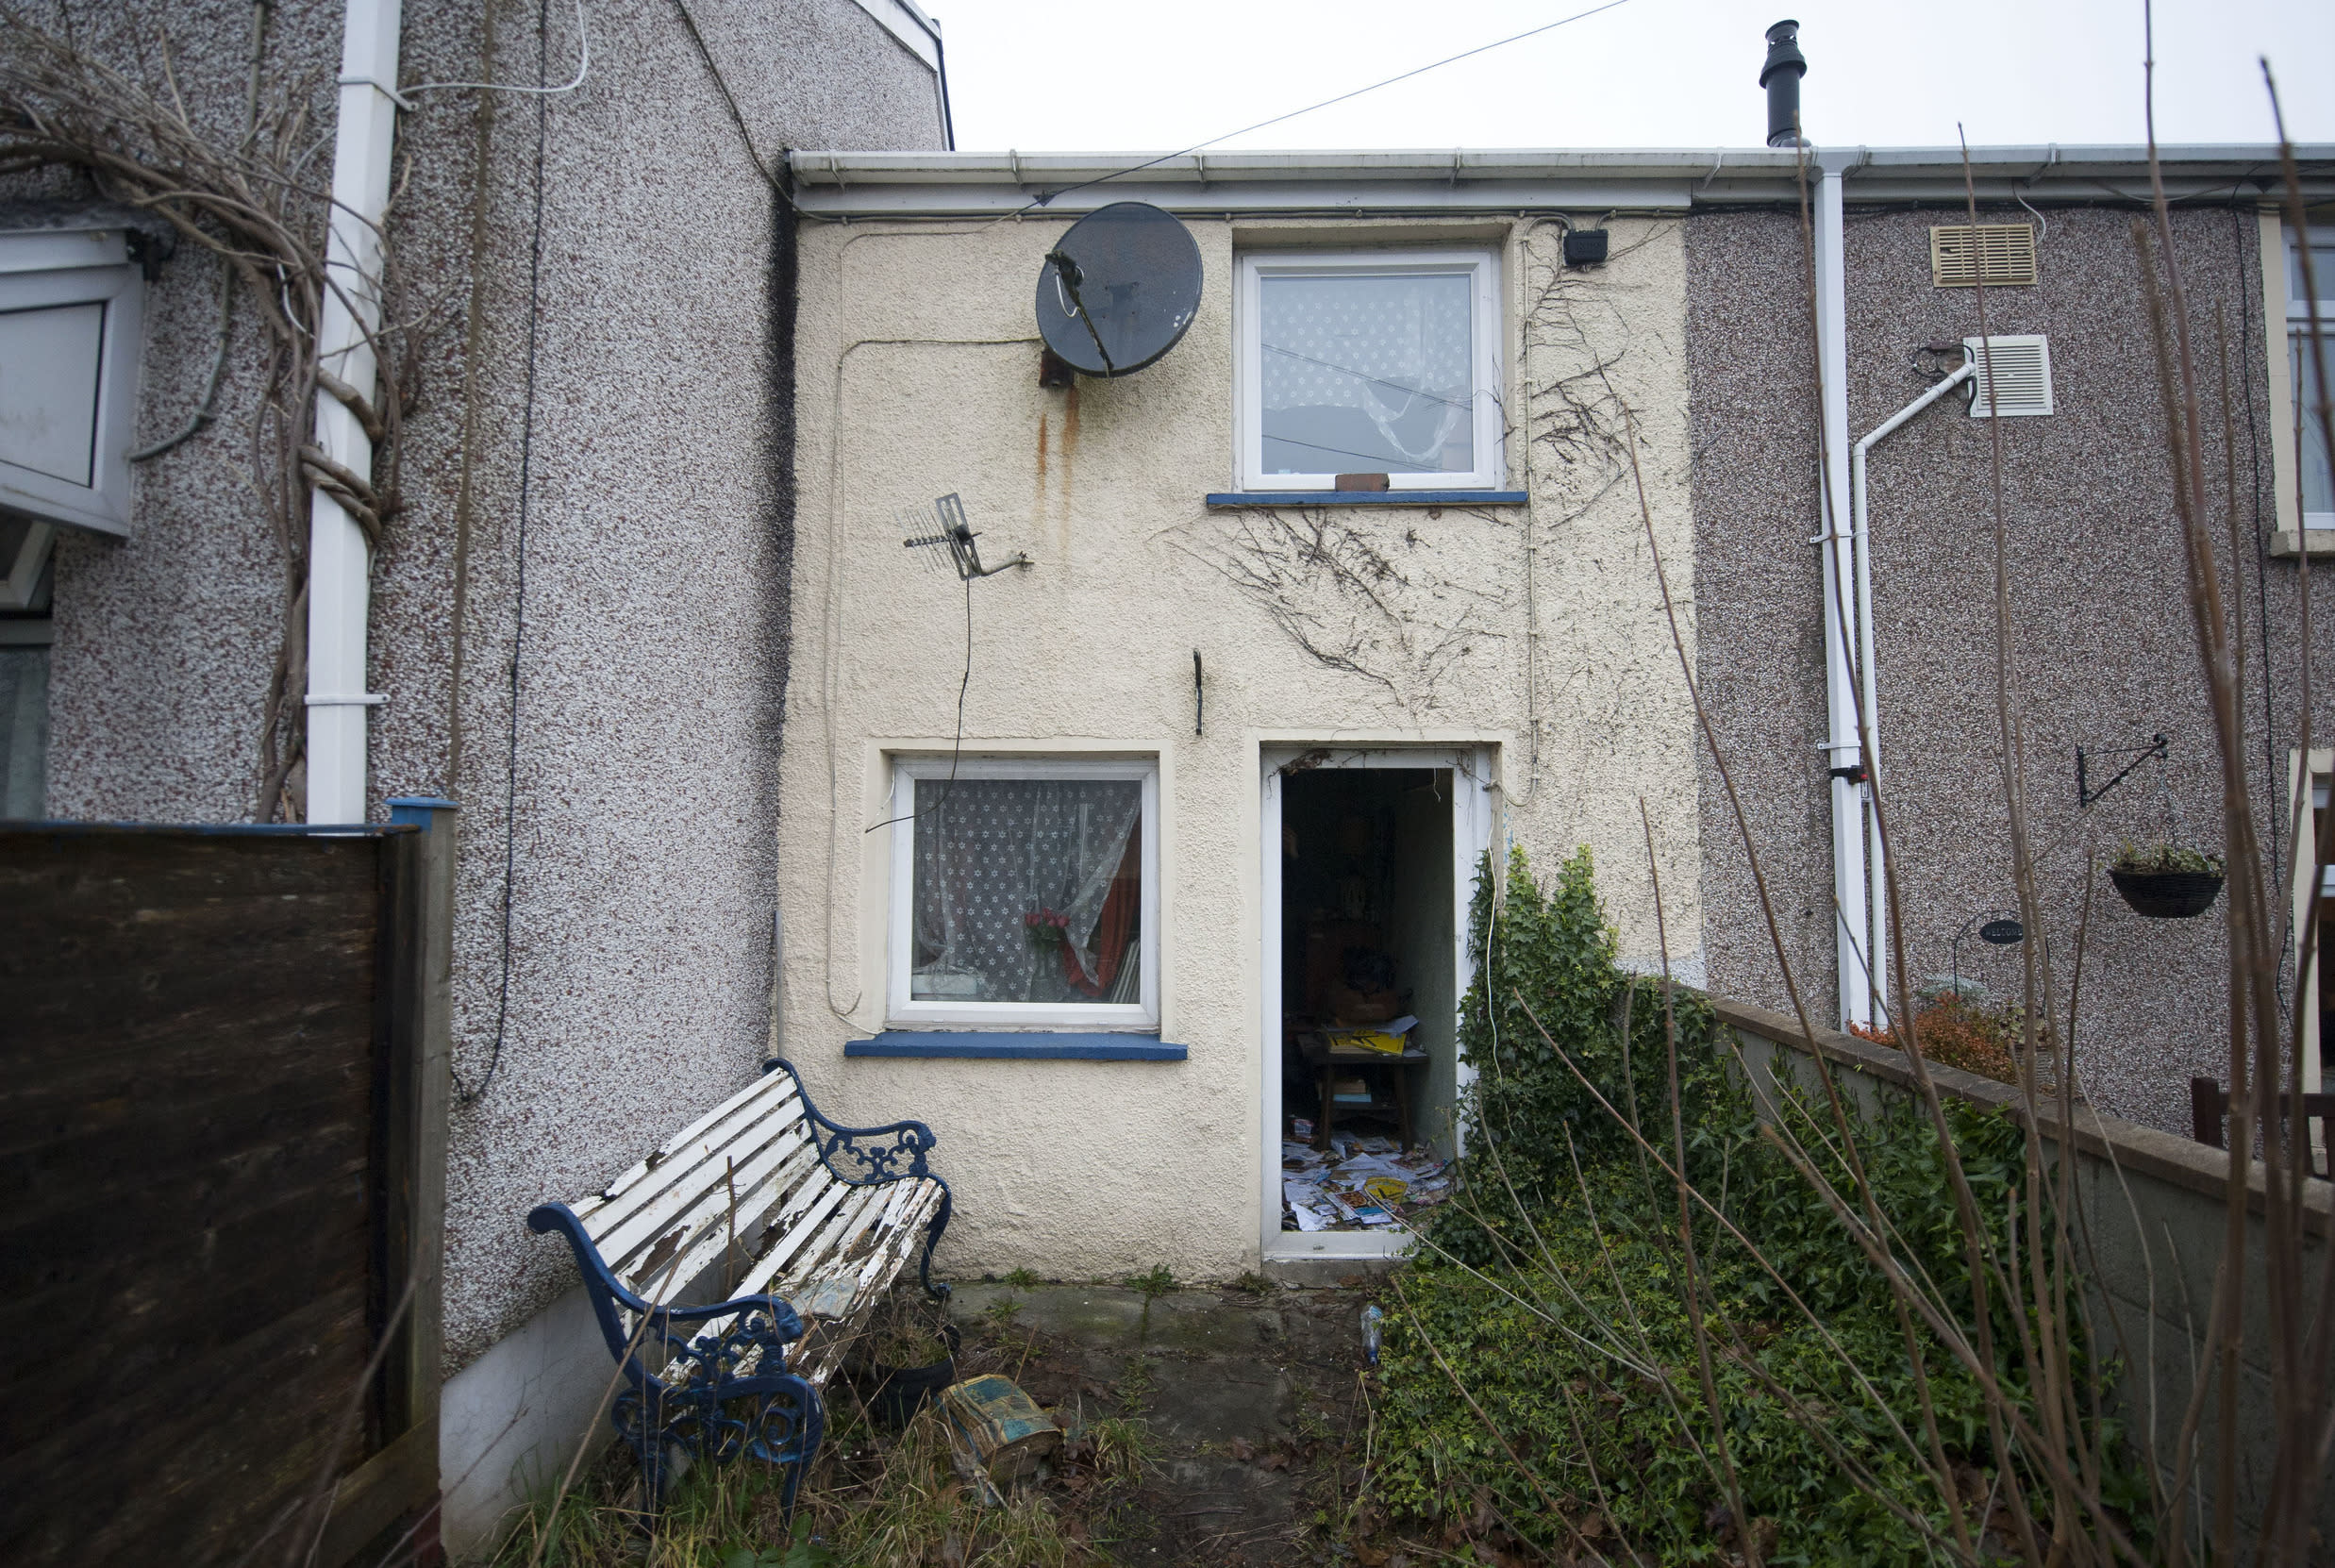 <p>The tiny terraced house in a former mining town in the Welsh Valleys sold for £15,500 in an auction.</p>  <p></p>